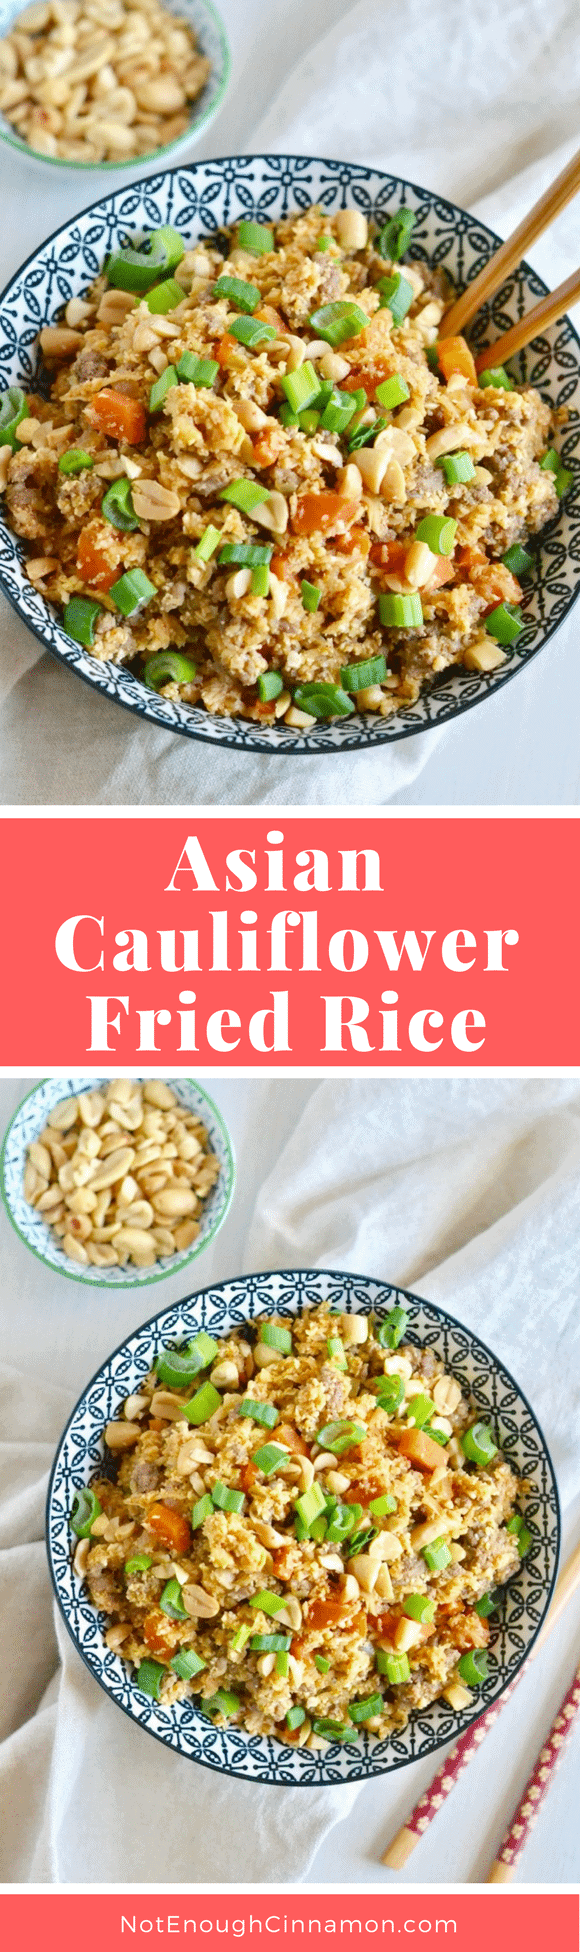 Asian cauliflower fried rice - the best easy recipe for low carb cauliflower fried rice with lean ground beef, fried egg, and an easy stir-fry sauce -so tasty and healthy! The perfect clean eating meal you can devour without feeling guilty! #healthy, #easy, #friedrice, #cleaneating